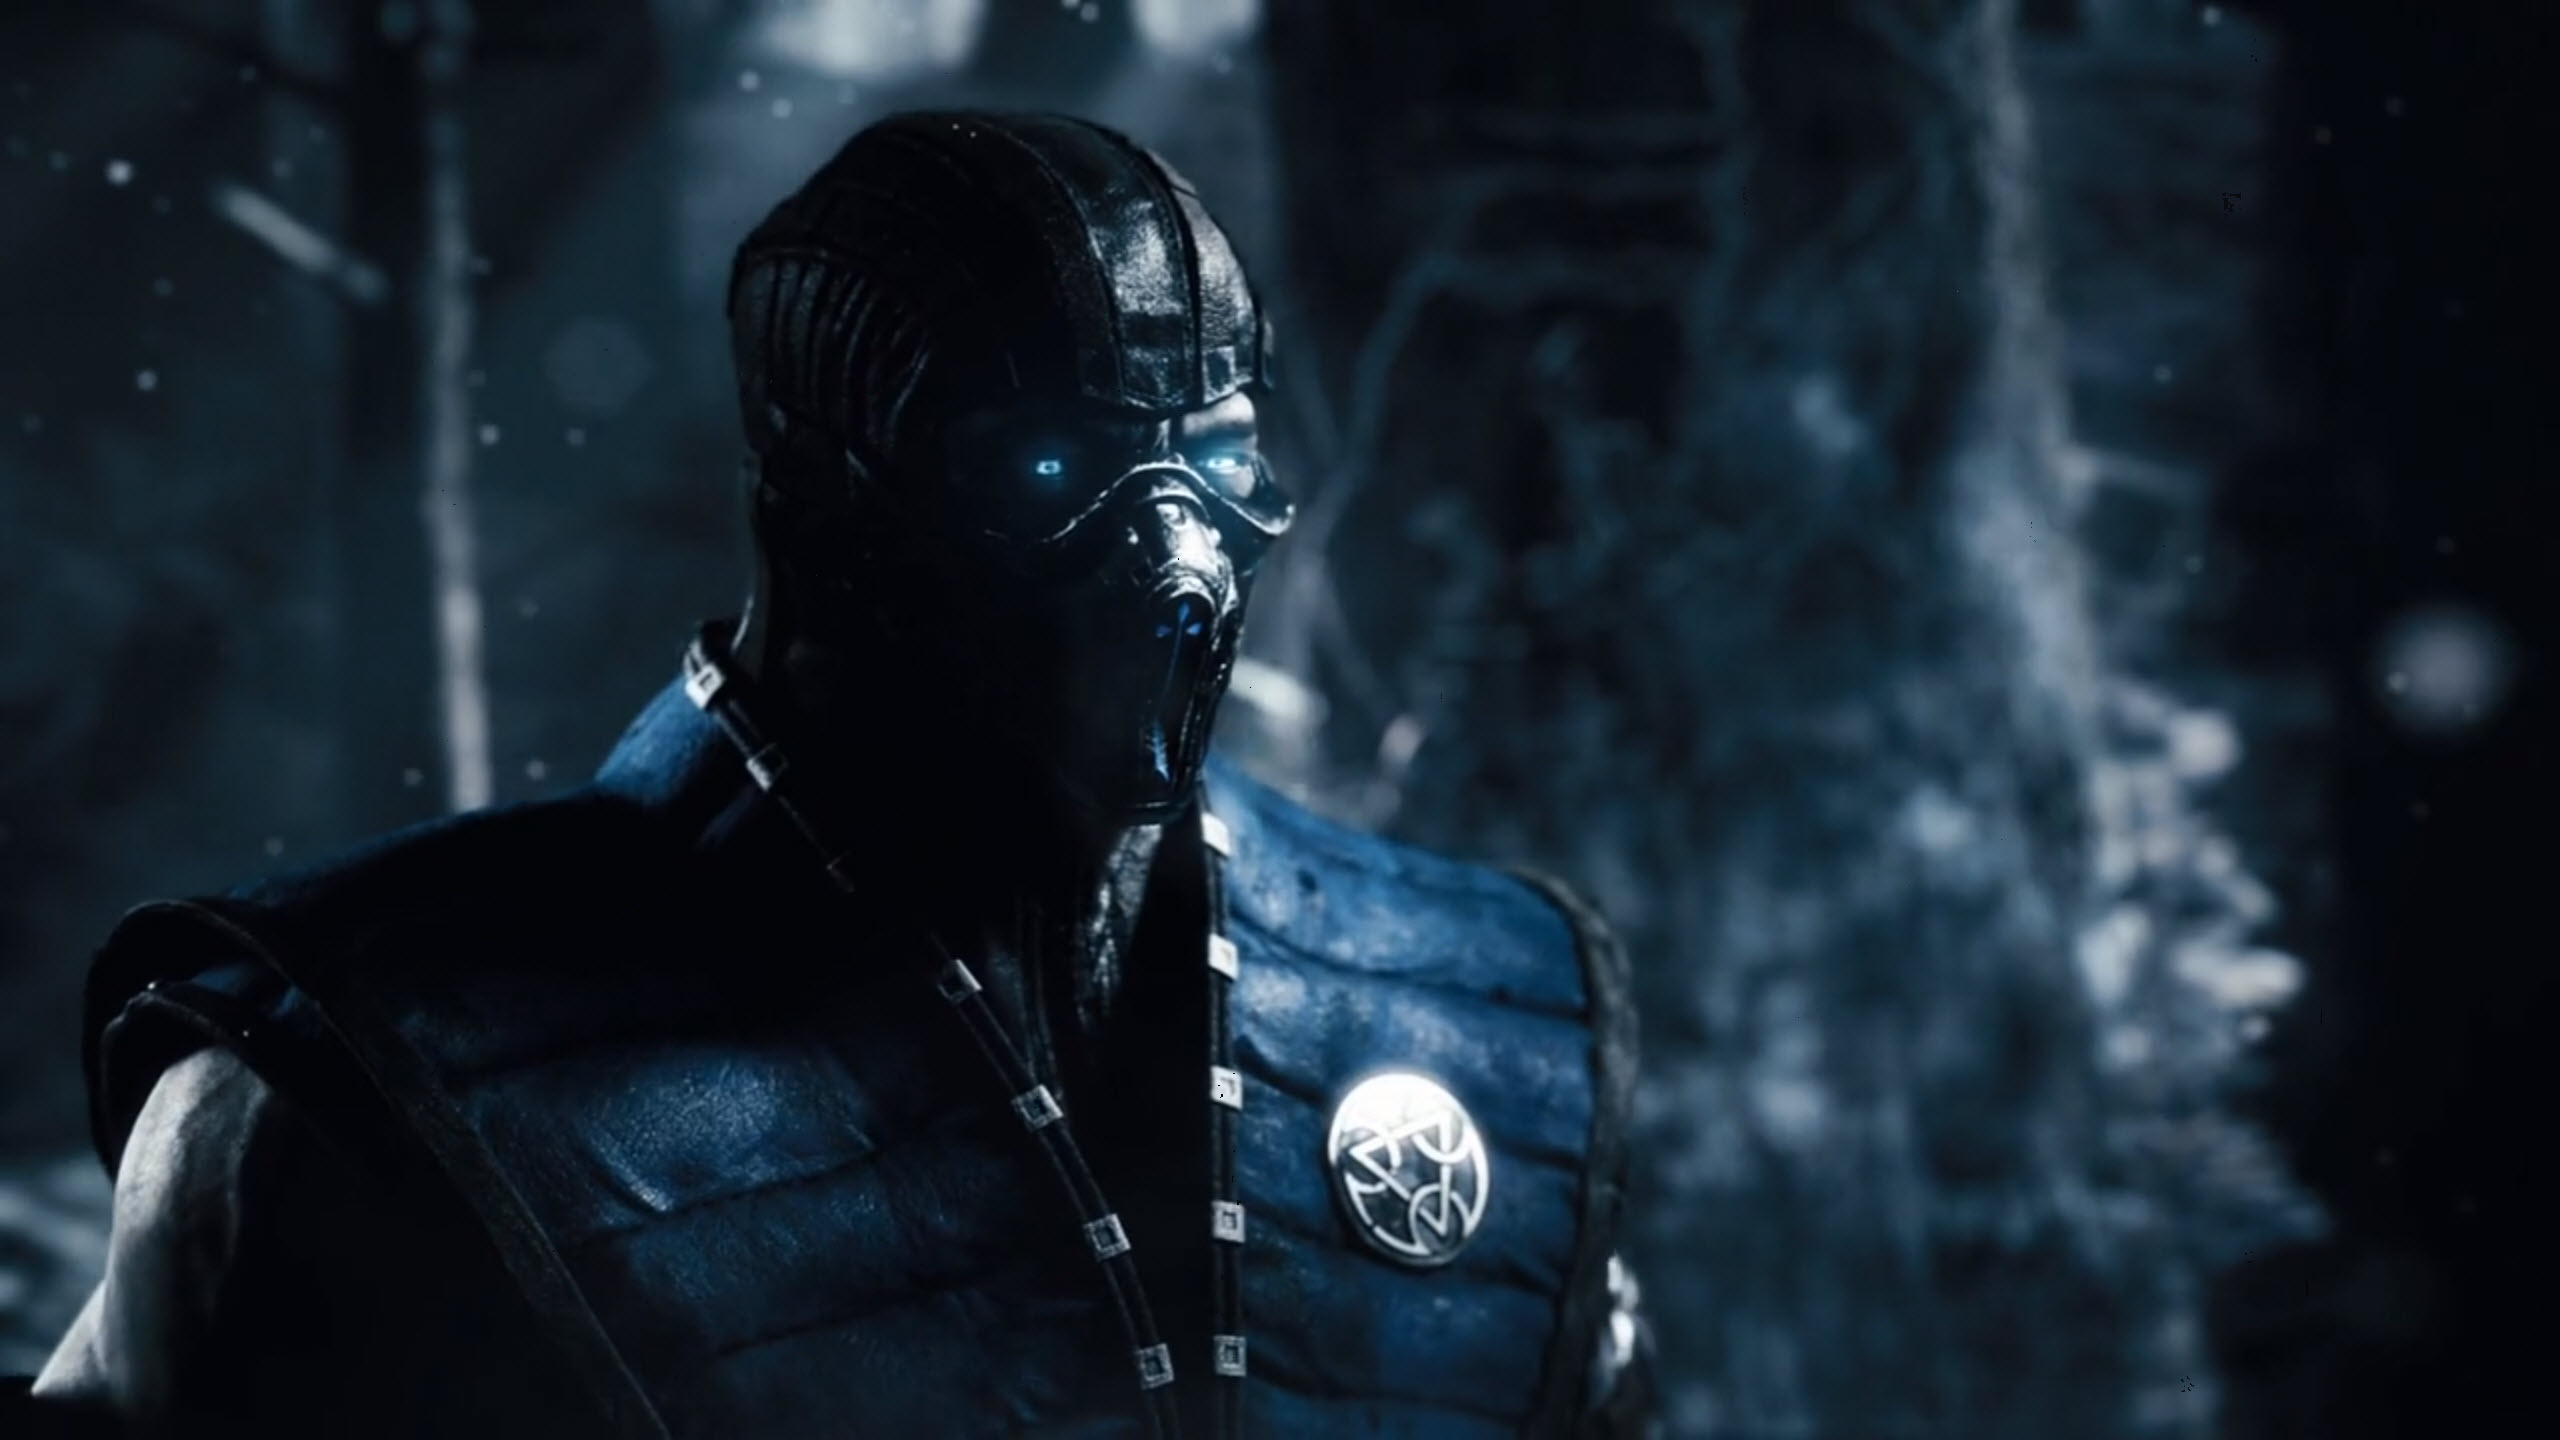 Mortal Kombat X wallpaper   1230035 2560x1440